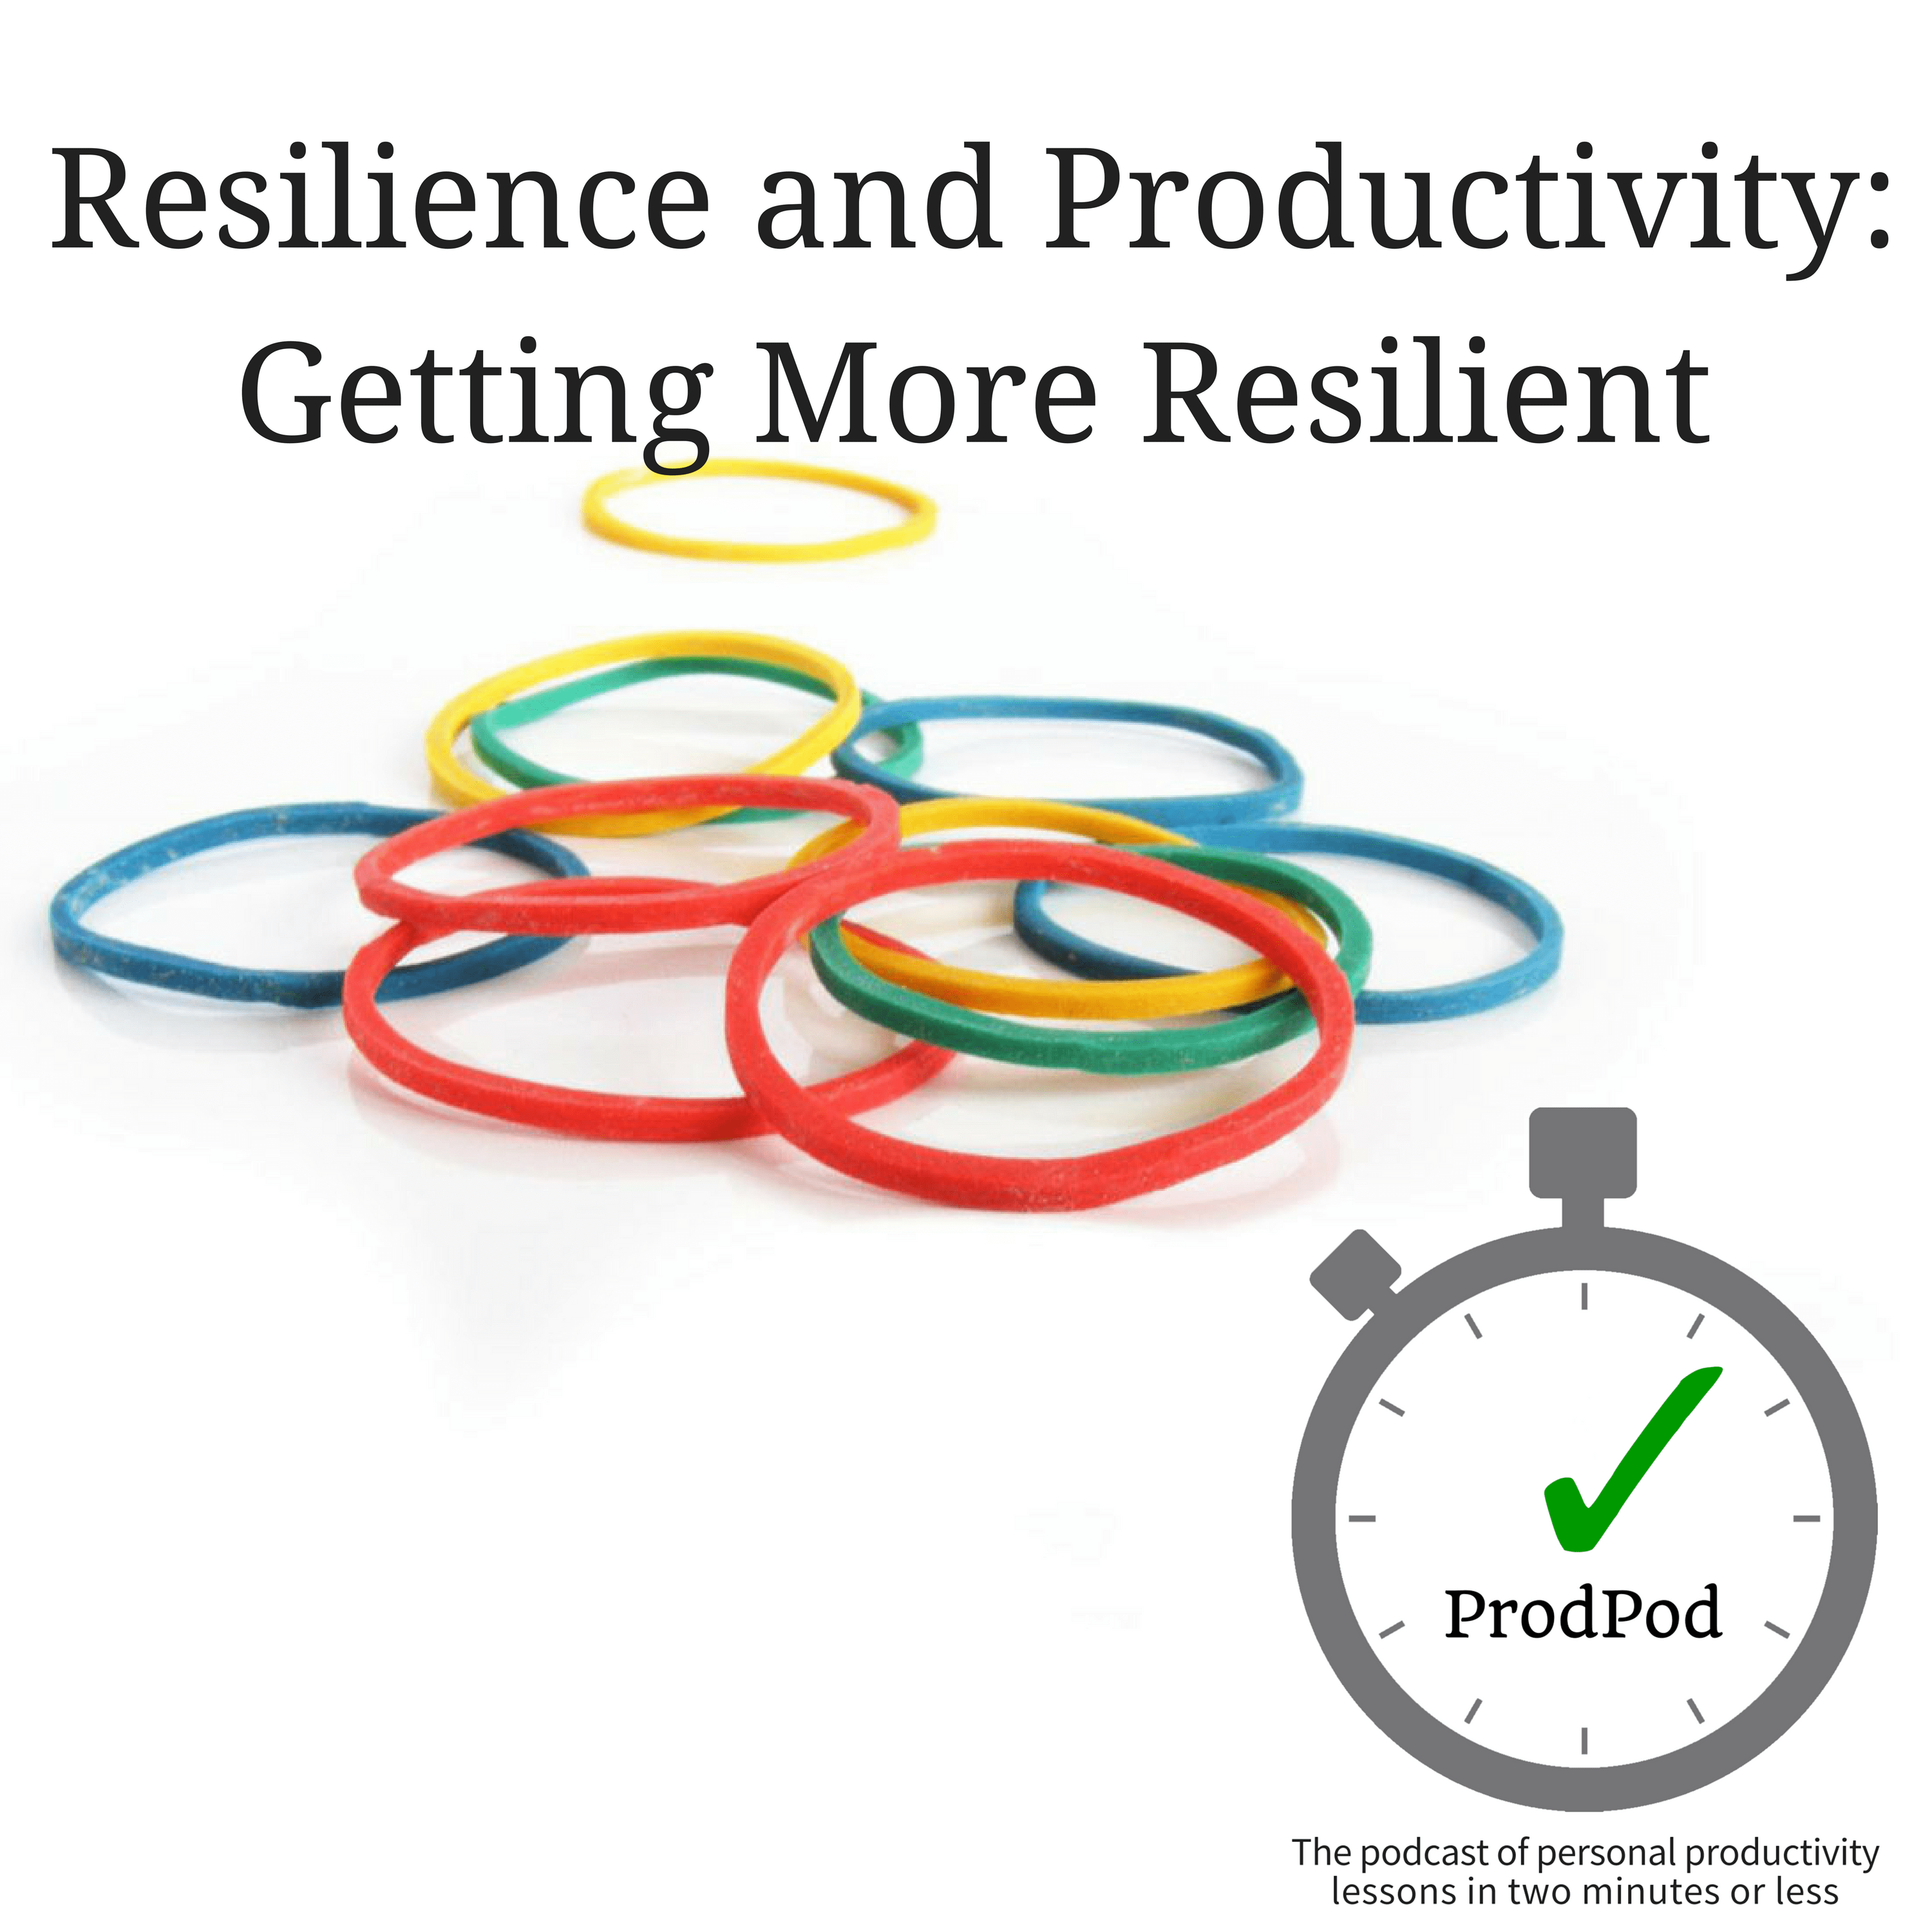 ProdPod: Episode 117 — Getting More Resilient (Resilience and Productivity)